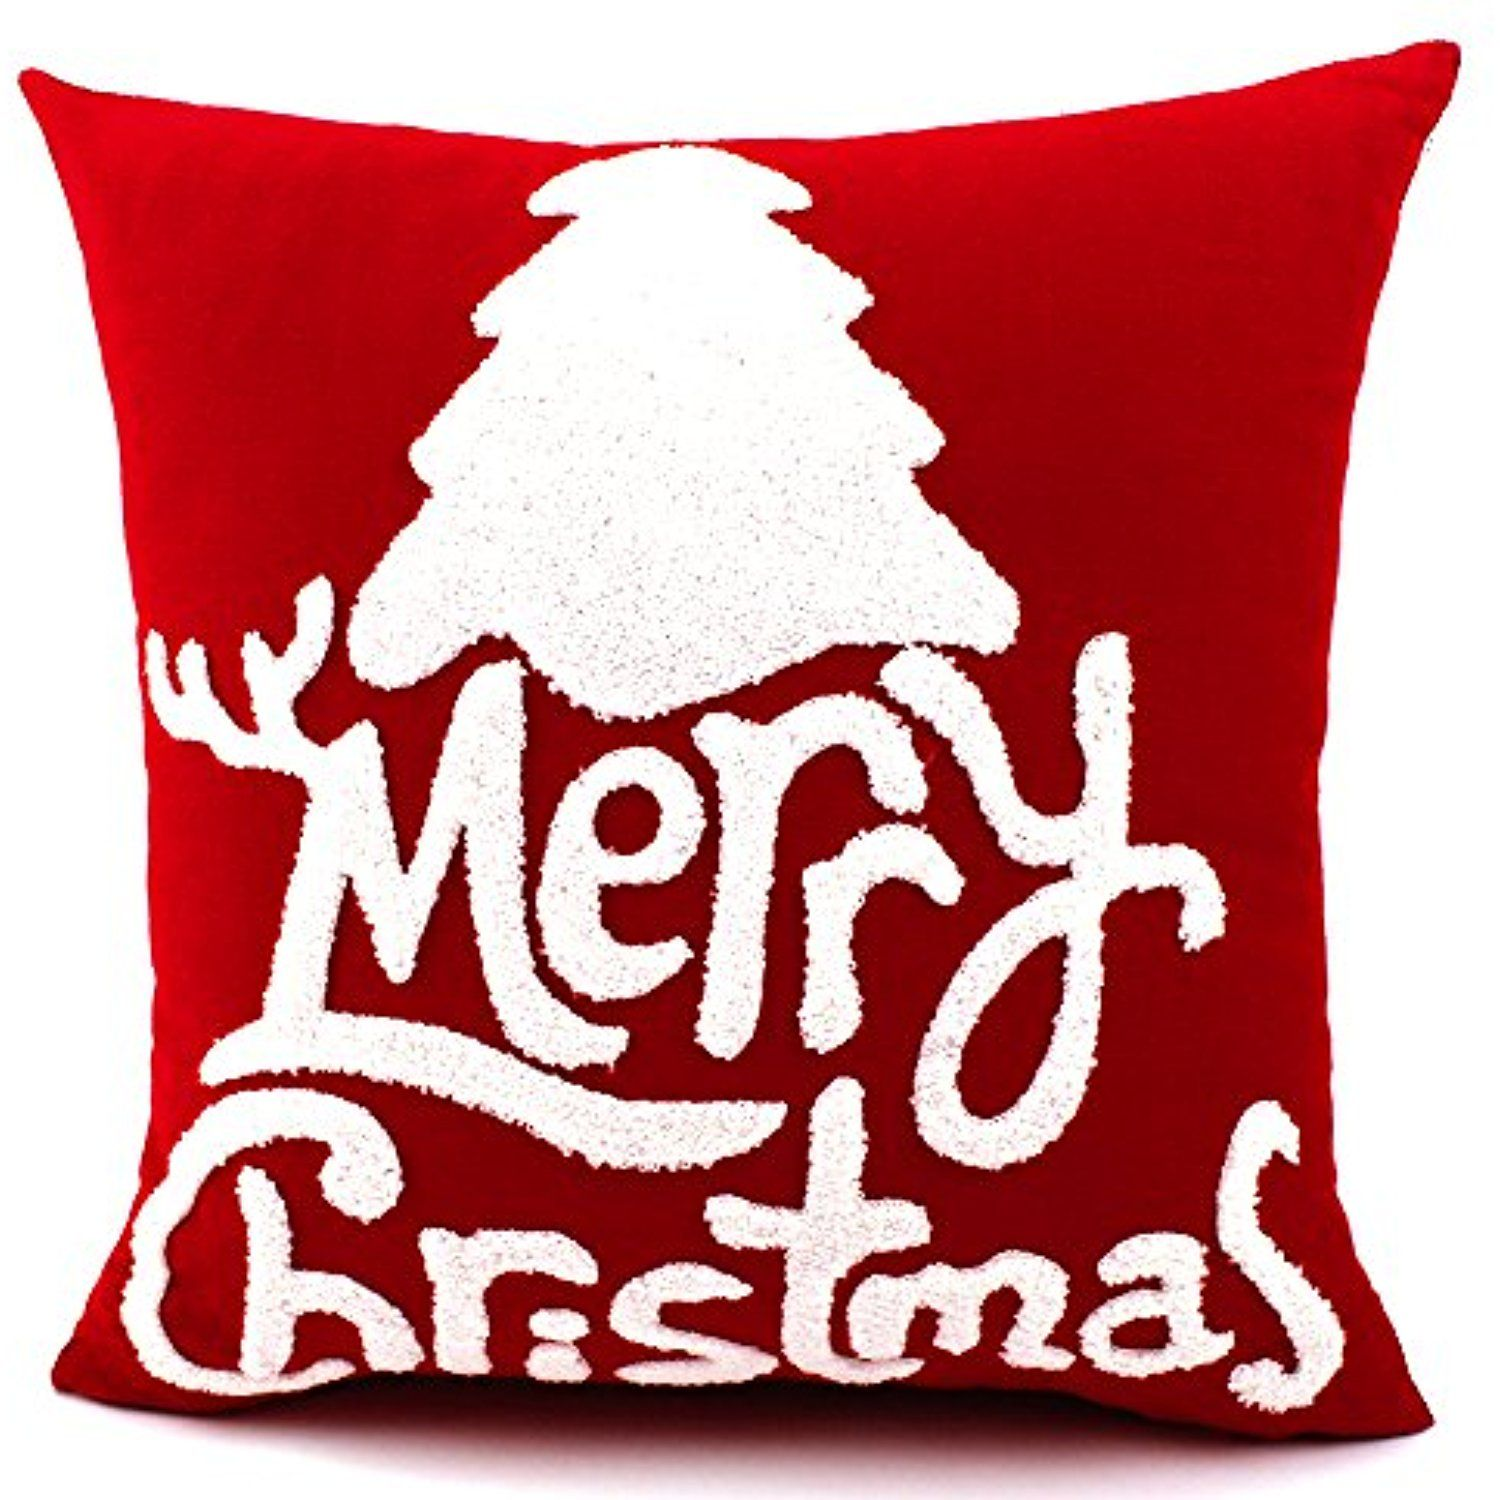 anroll 18 canvas cotton embroidery throw pillow covers christmas decorative decor for couch bed chair red d you can get additional details at the - Christmas Decorative Pillow Covers